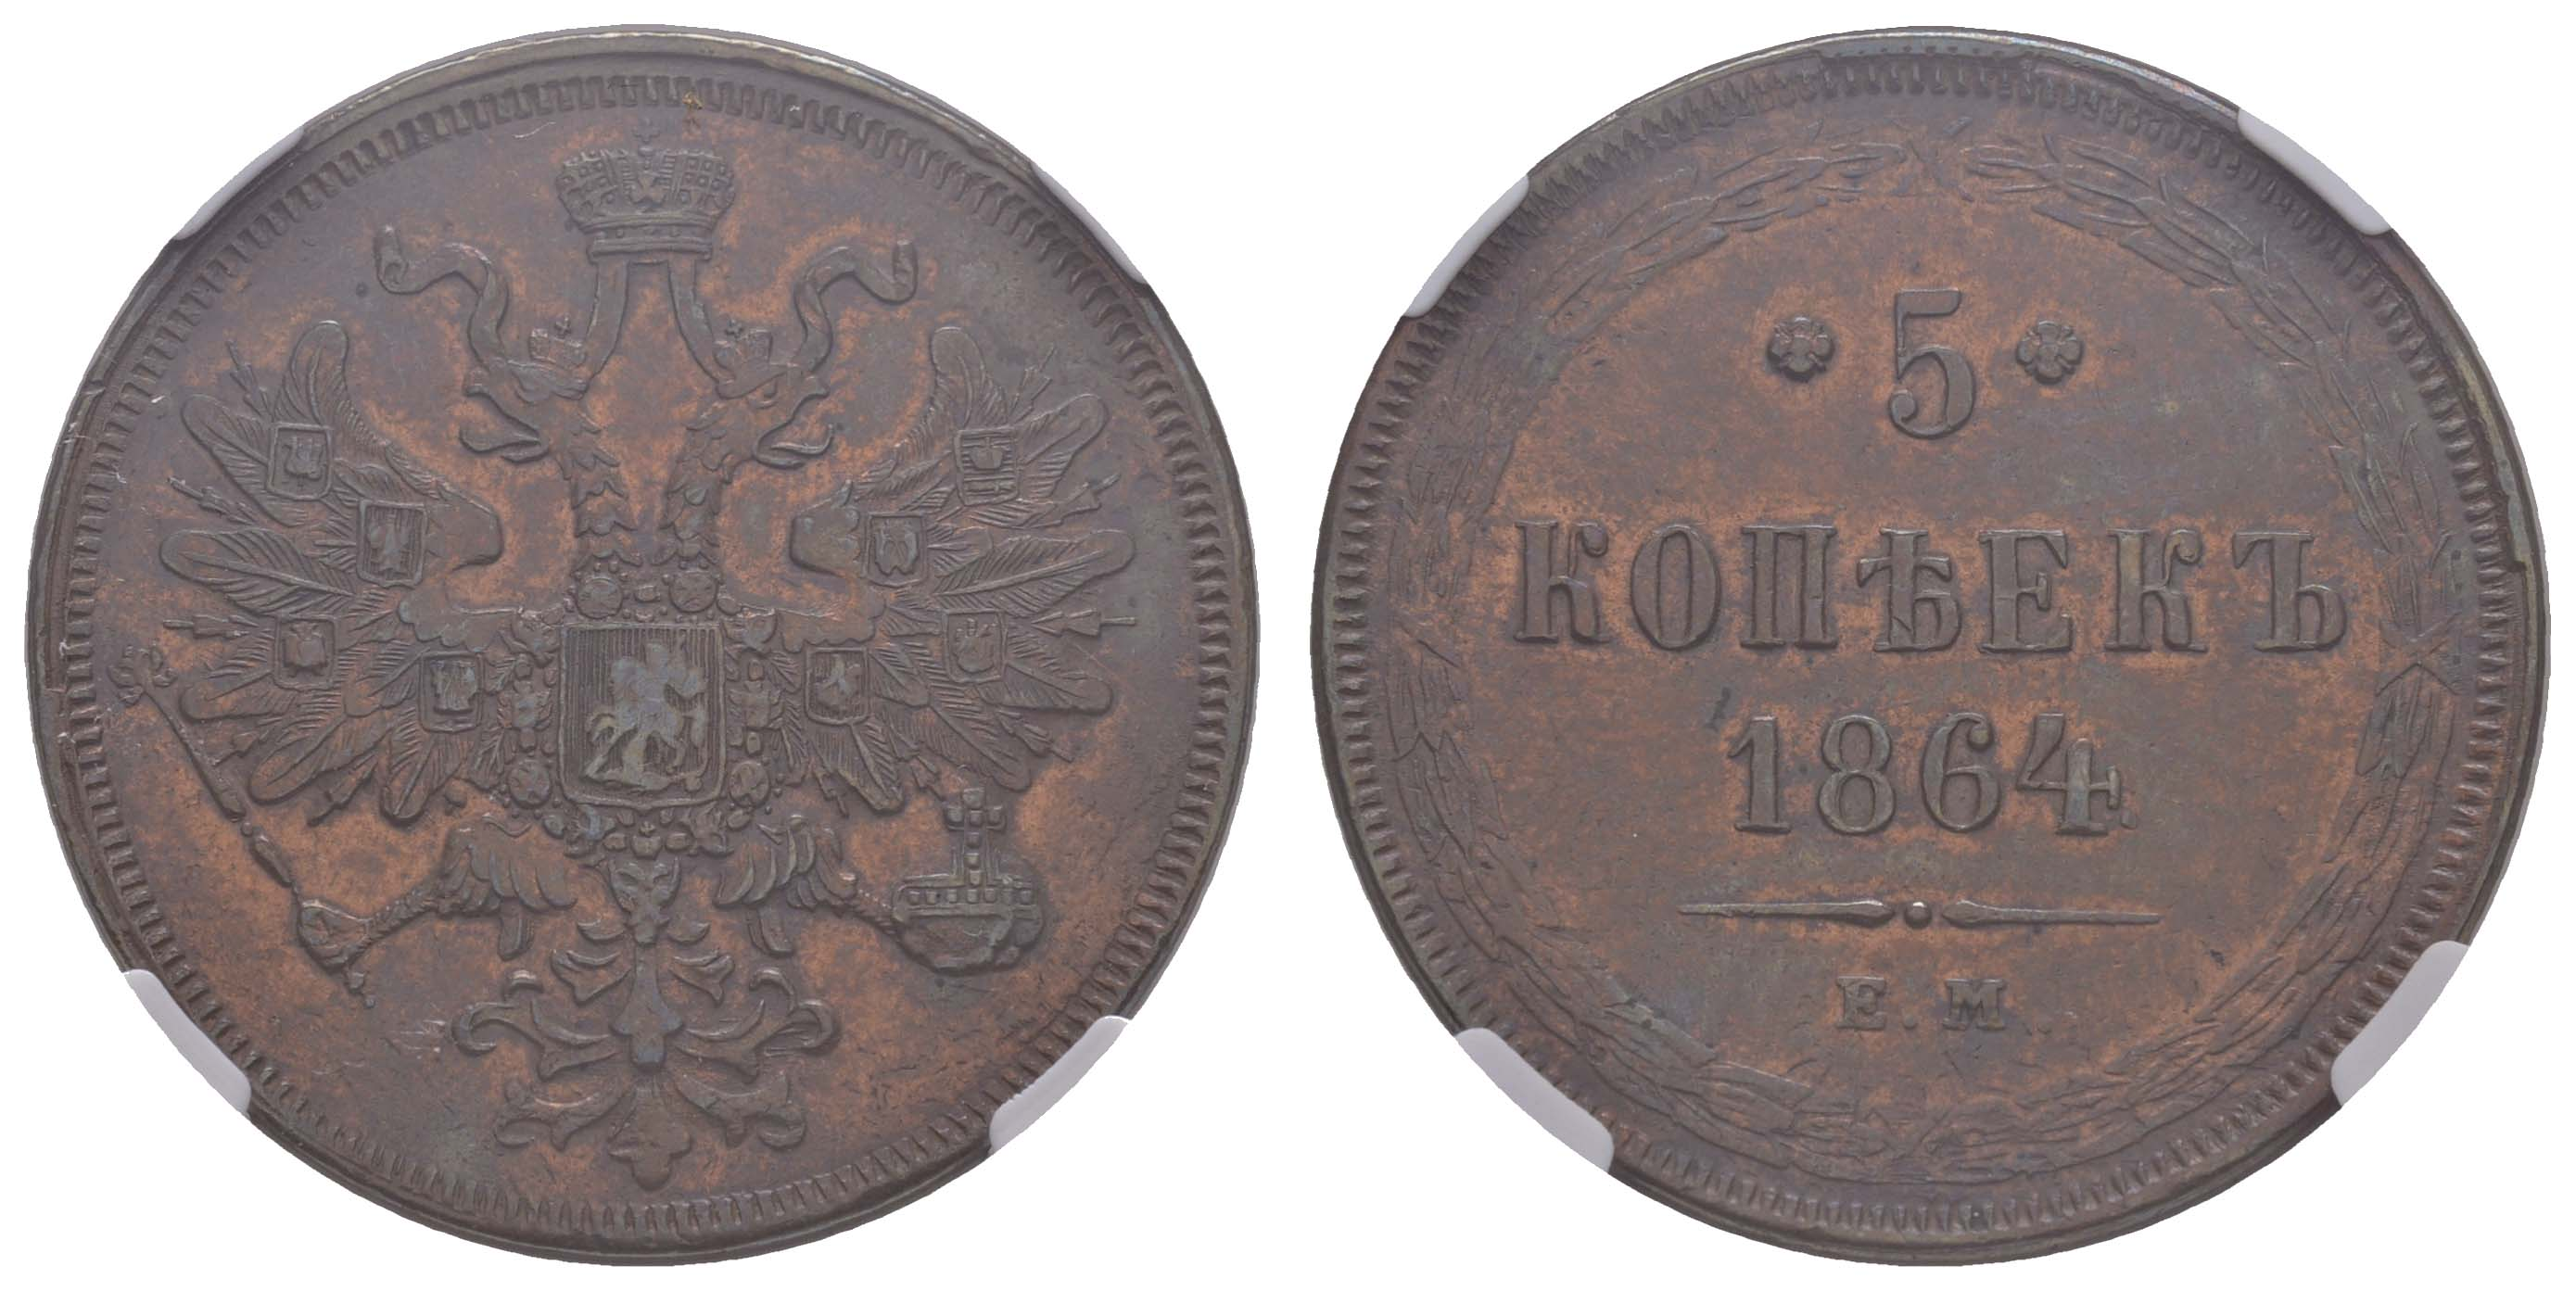 Lot 1742 - europa ab 1800 - Russland -  Auktionshaus Ulrich Felzmann GmbH & Co. KG Coins single lots